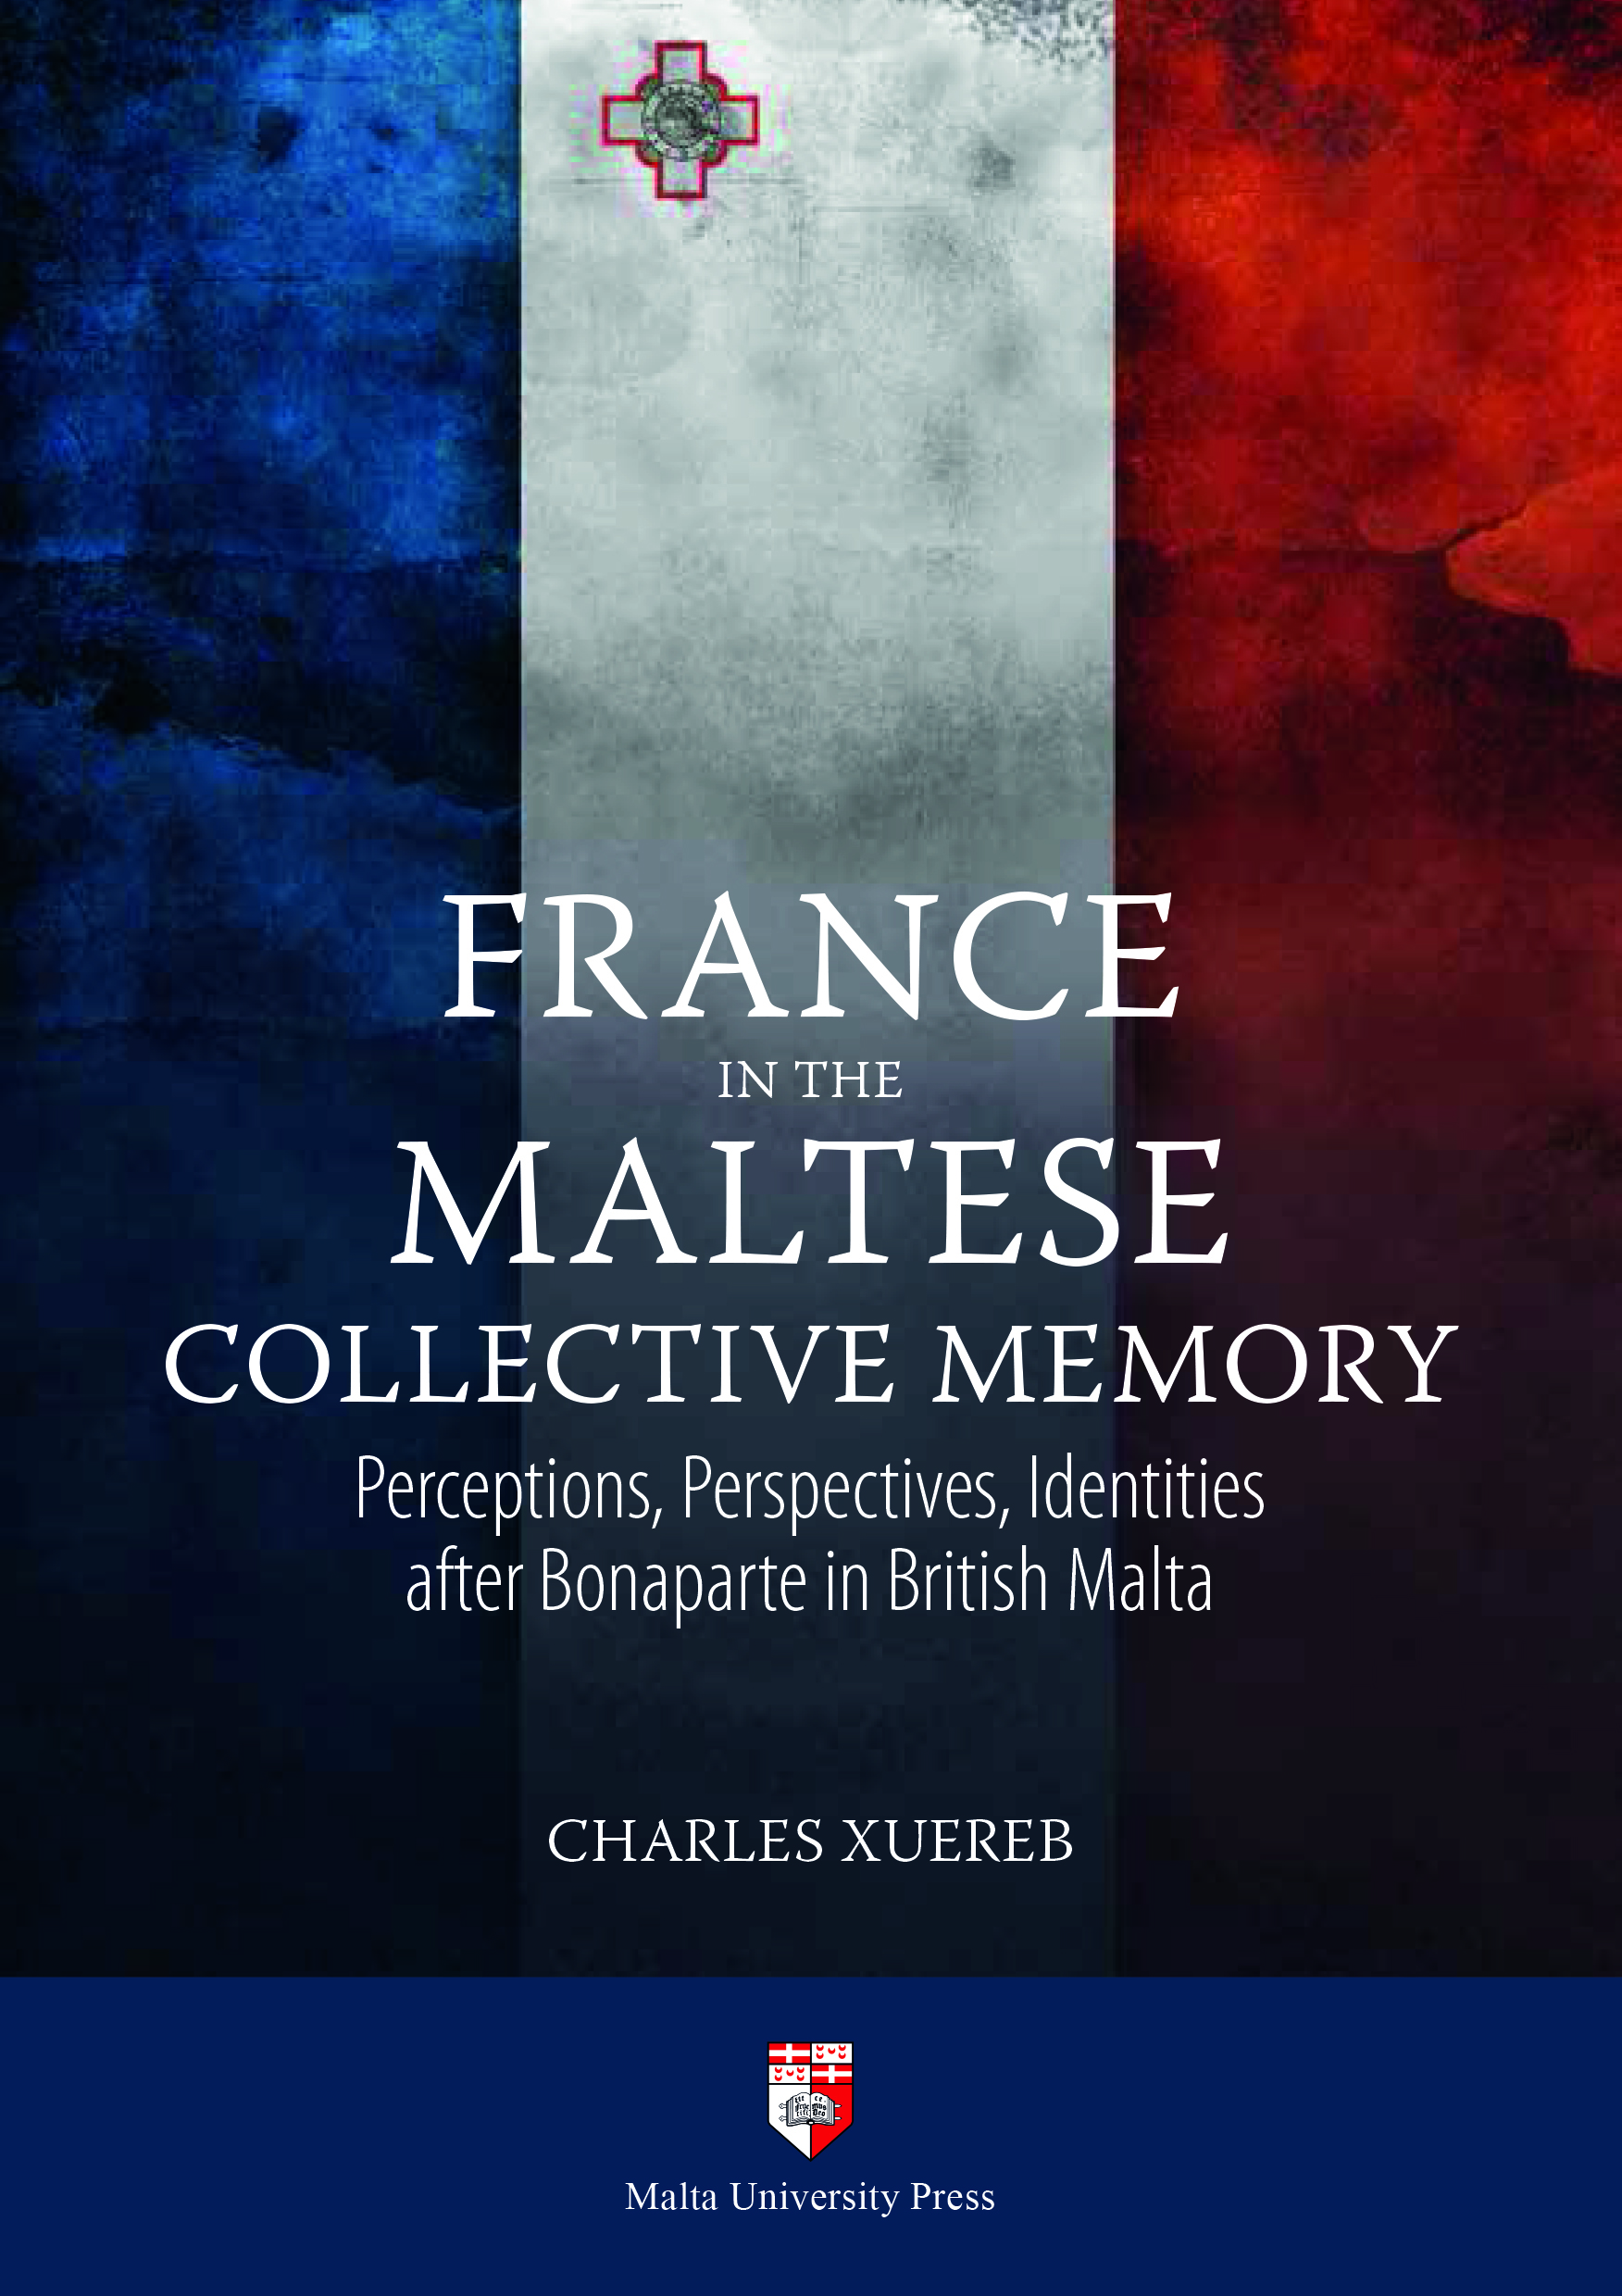 France In The Maltese Collective Memory Perceptions, Perspectives, Identities after Bonaparte in British Malta